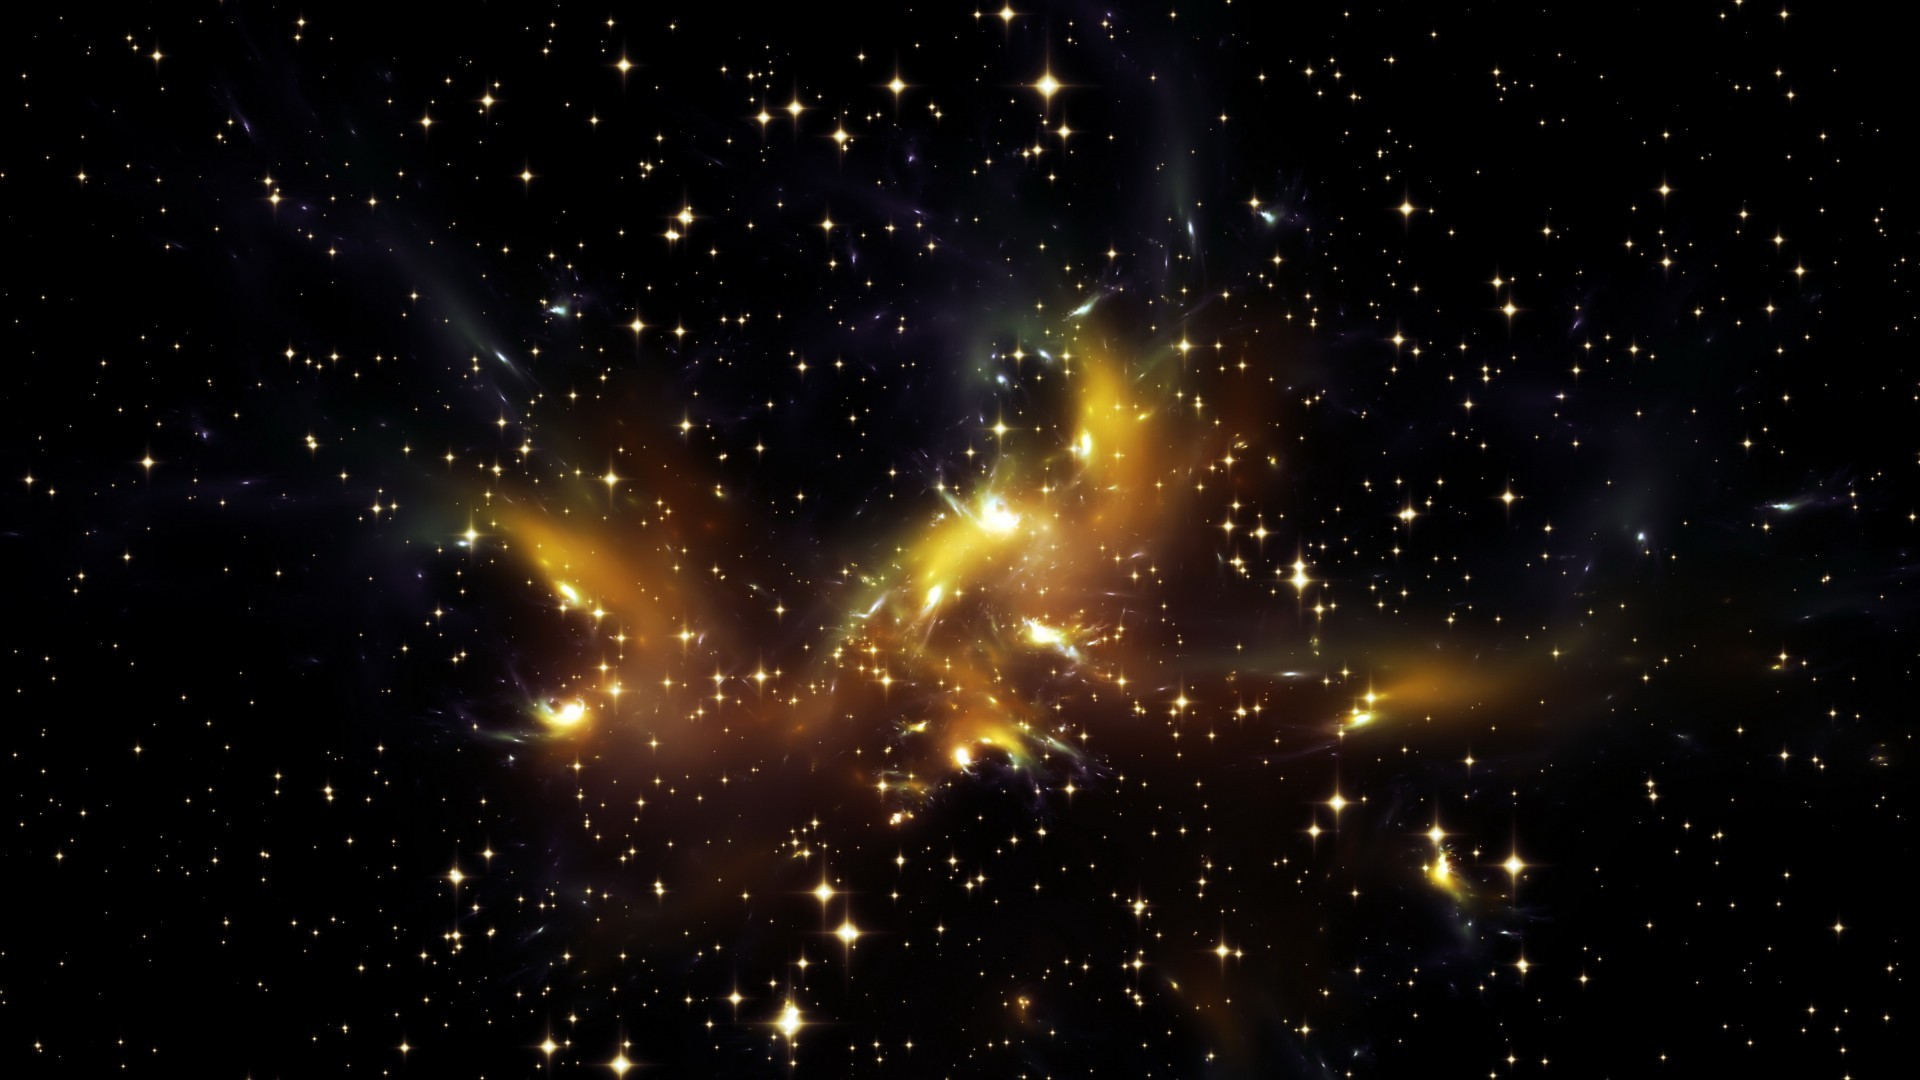 Related Wallpapers. Colorful space star nebula astral Universe abstract  background best pictures desktop quality